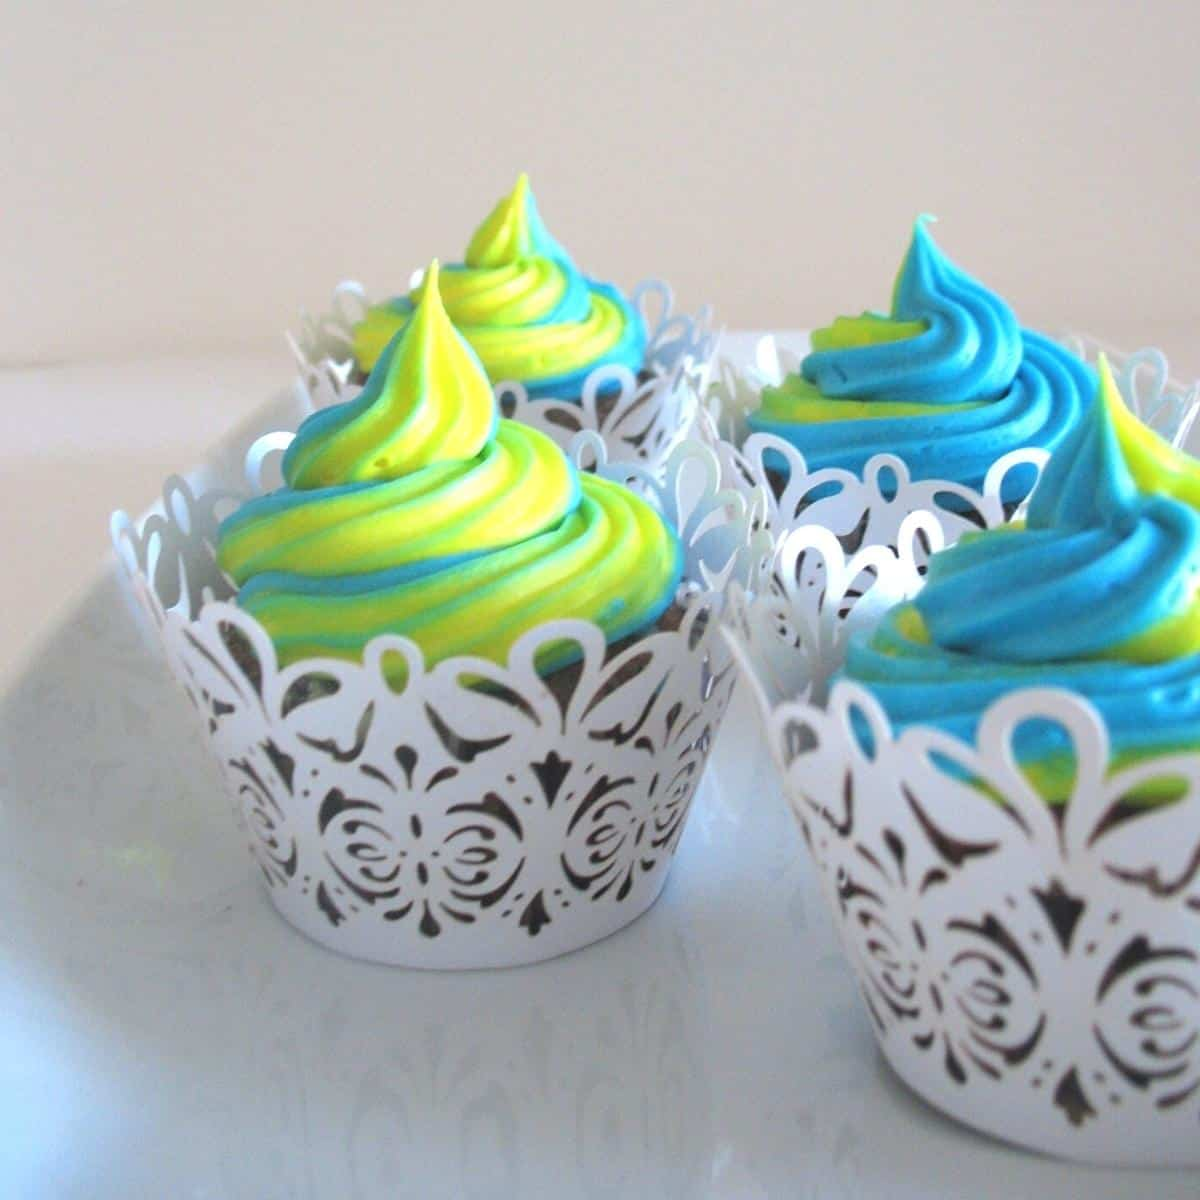 Cupcakes with buttercream frosting.